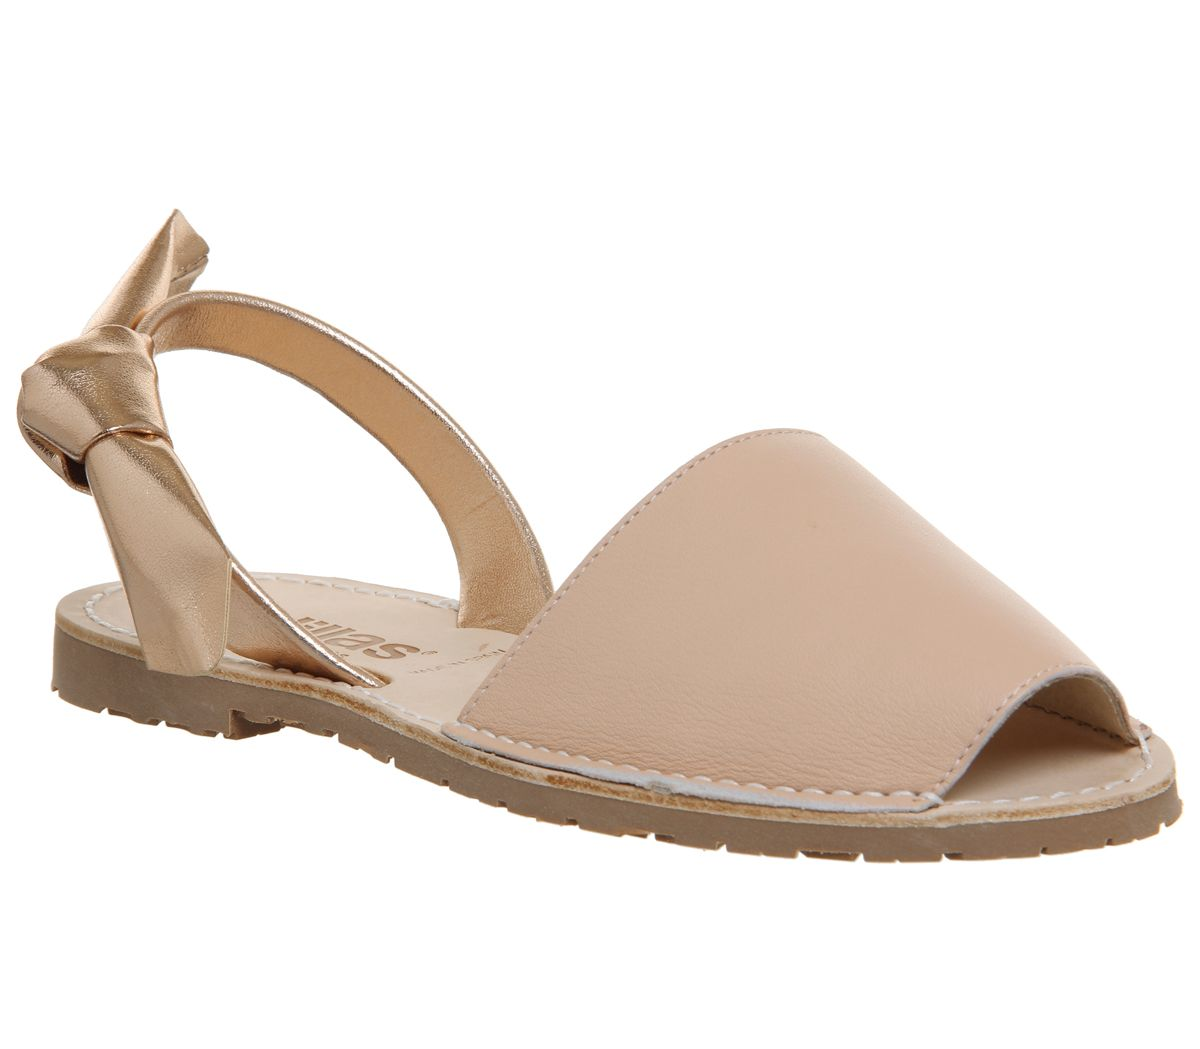 Solillas Solillas Bow Sandals, Grey